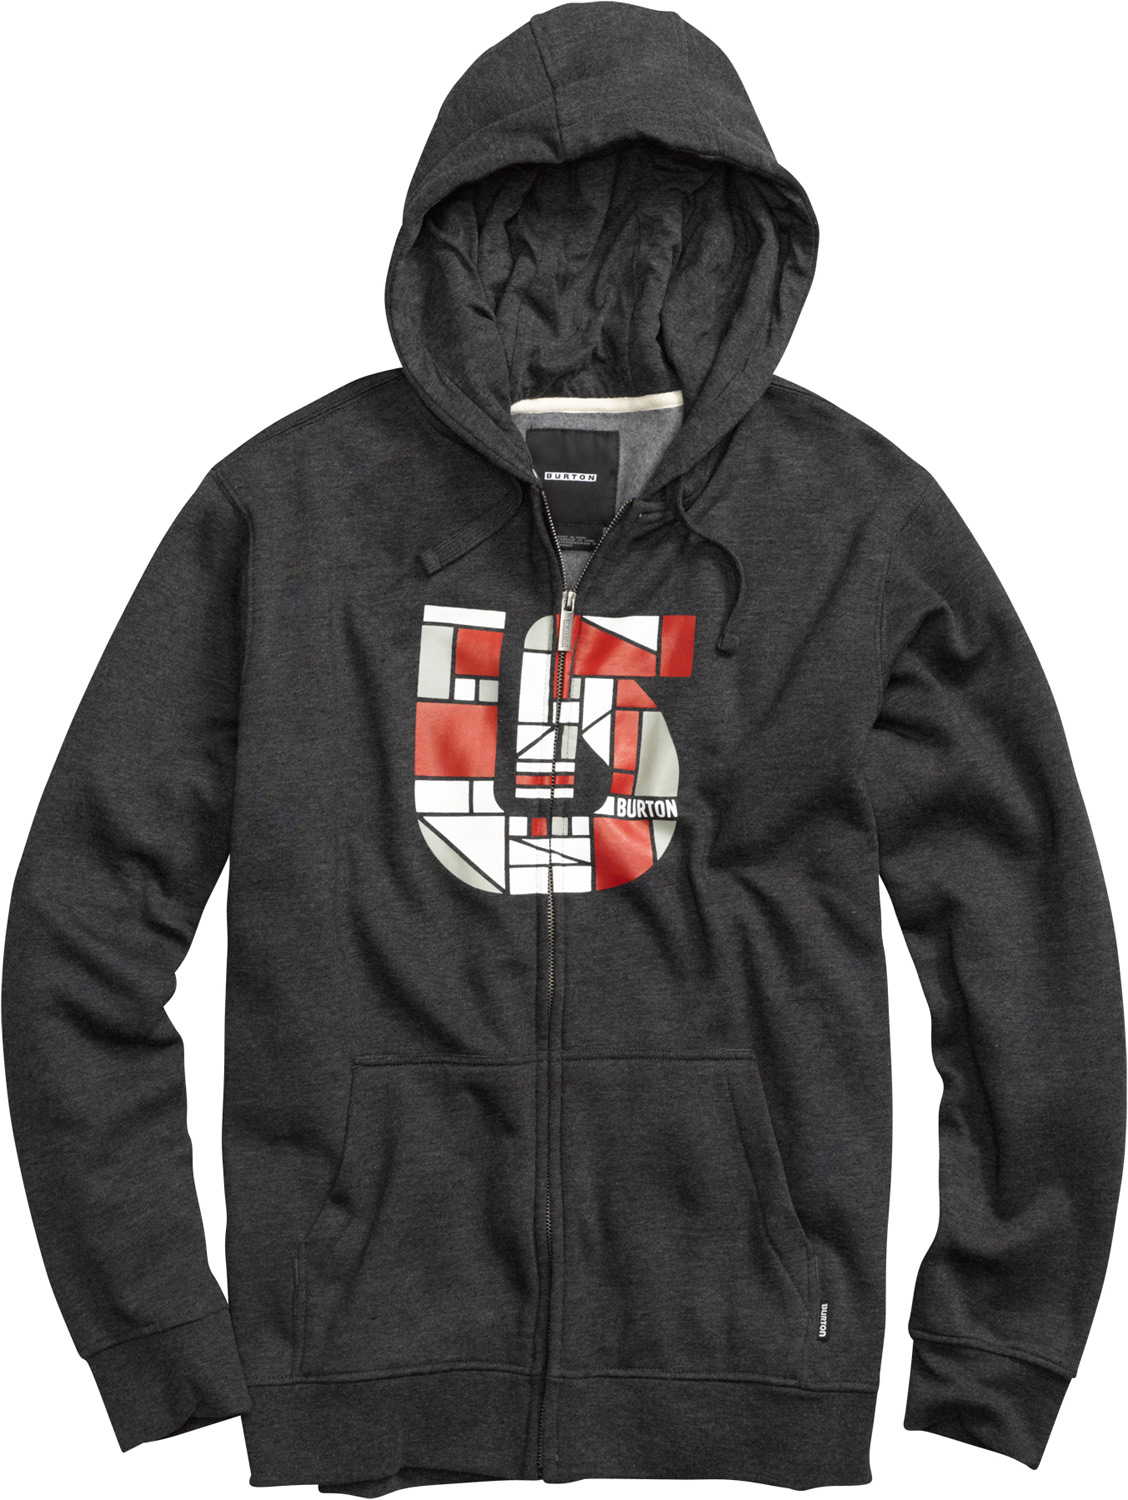 Snowboard Key Features of the Burton Compartment Fullzip Hoodie: 80% Cotton, 20% Polyester, 300G Fleece Kangaroo Pocket with Interior Media Stash Screen Print on Chest Regular Fit - $55.00